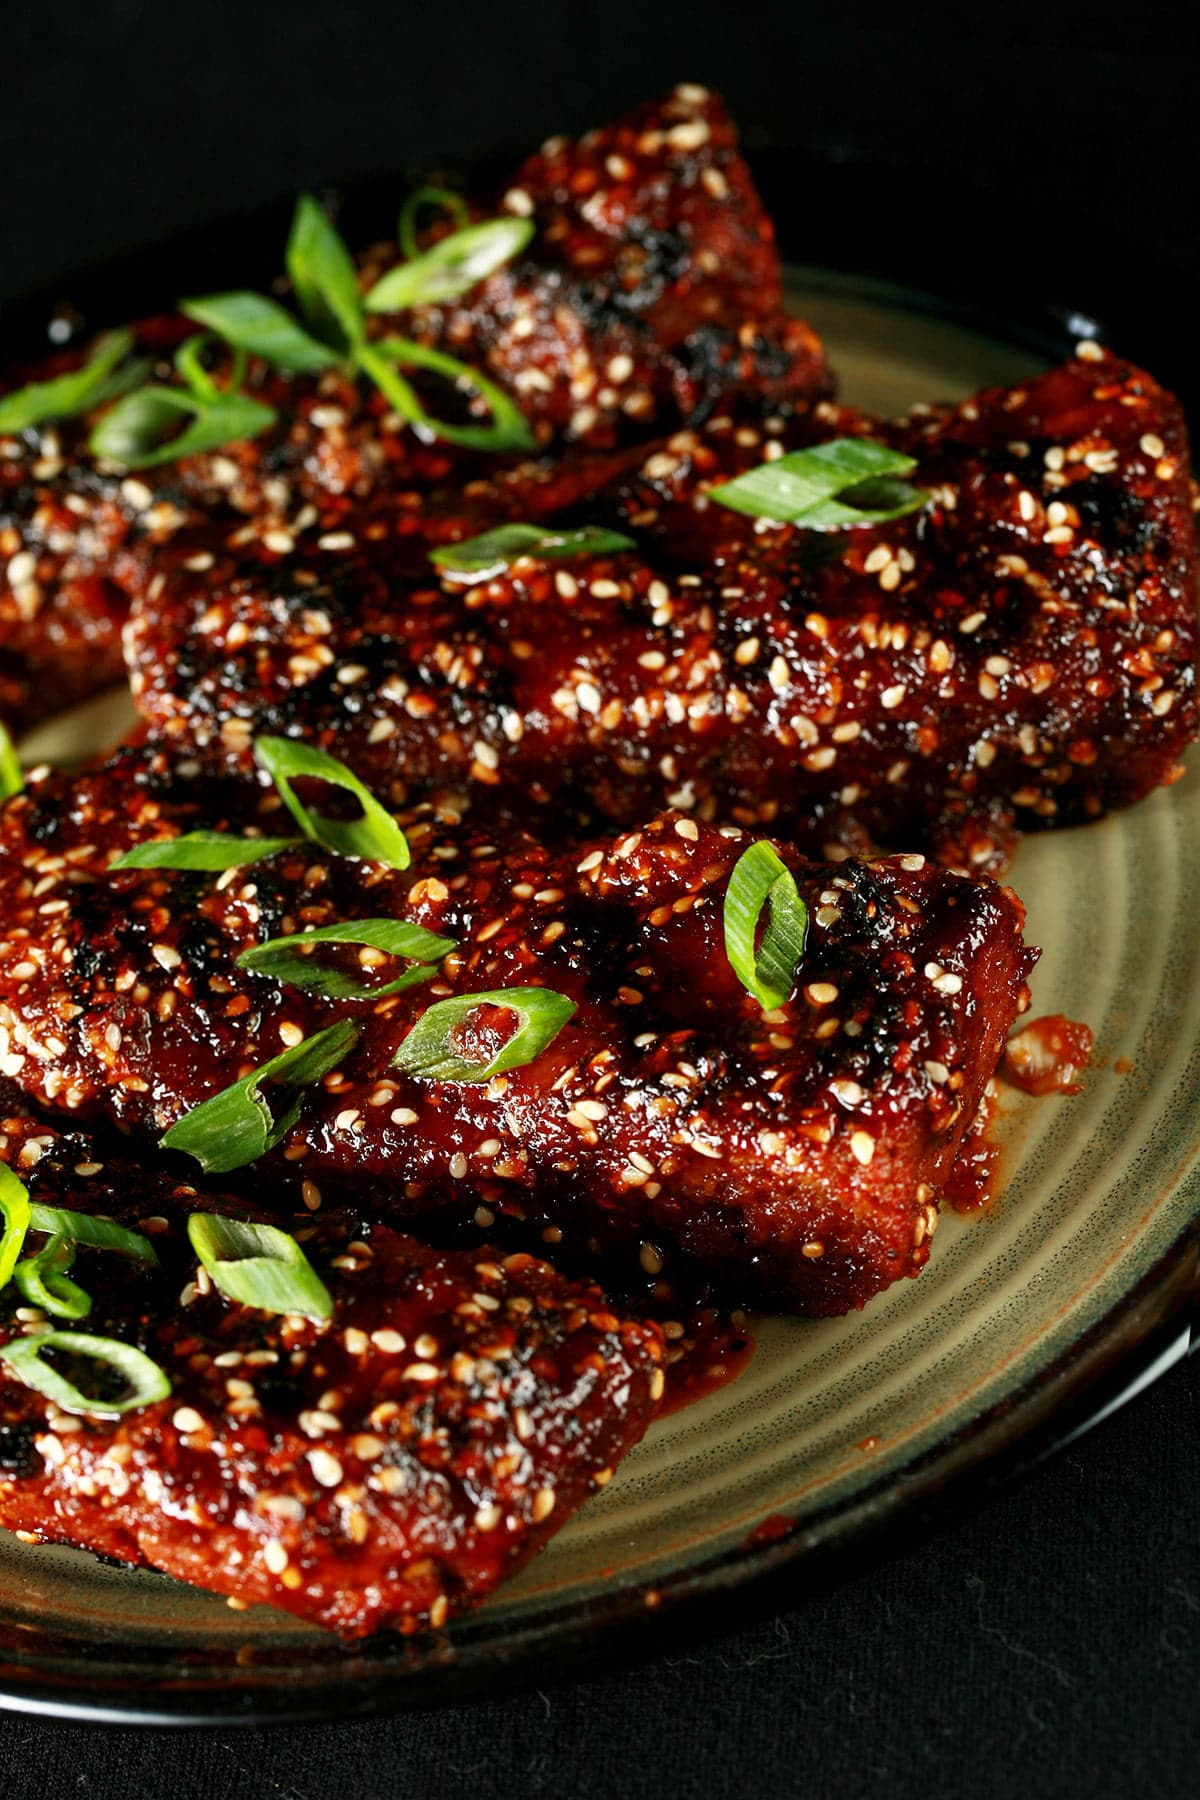 Close up photo of a plate of vegan boneless ribs. They're covered in a red-brown sauce, sesame seeds, and sliced green onion.